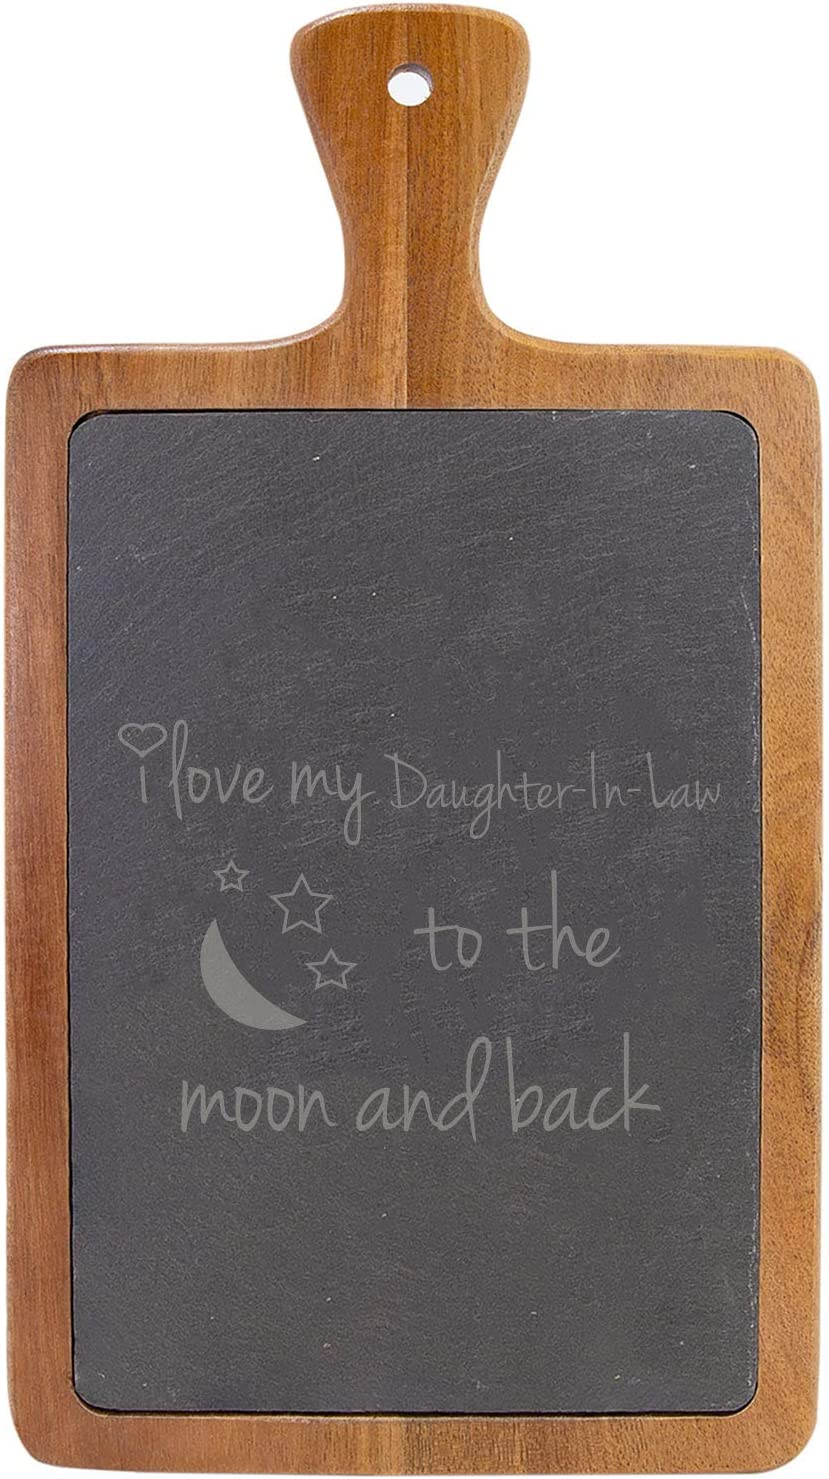 I love my Daughter-In-Law To The Special Campaign Moon Back 1 7-i 4-inch 13 Ranking TOP9 x and